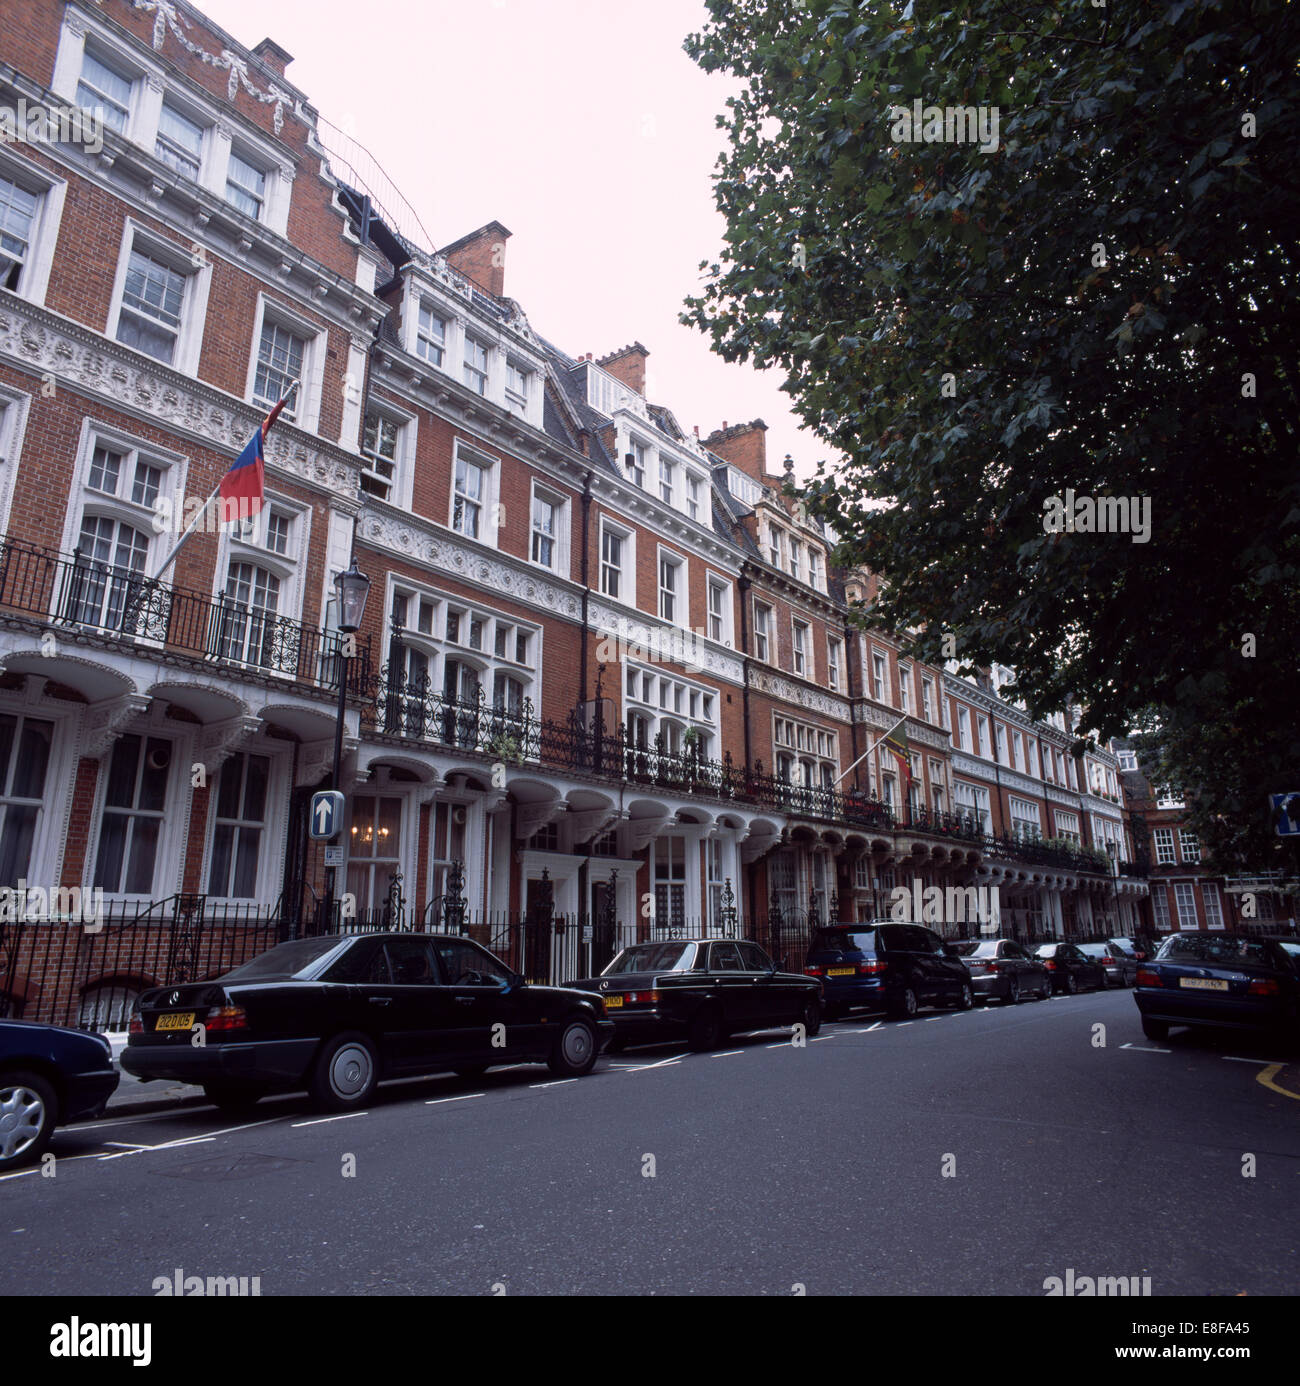 traditional edwardian terraced houses and apartment buildings in a